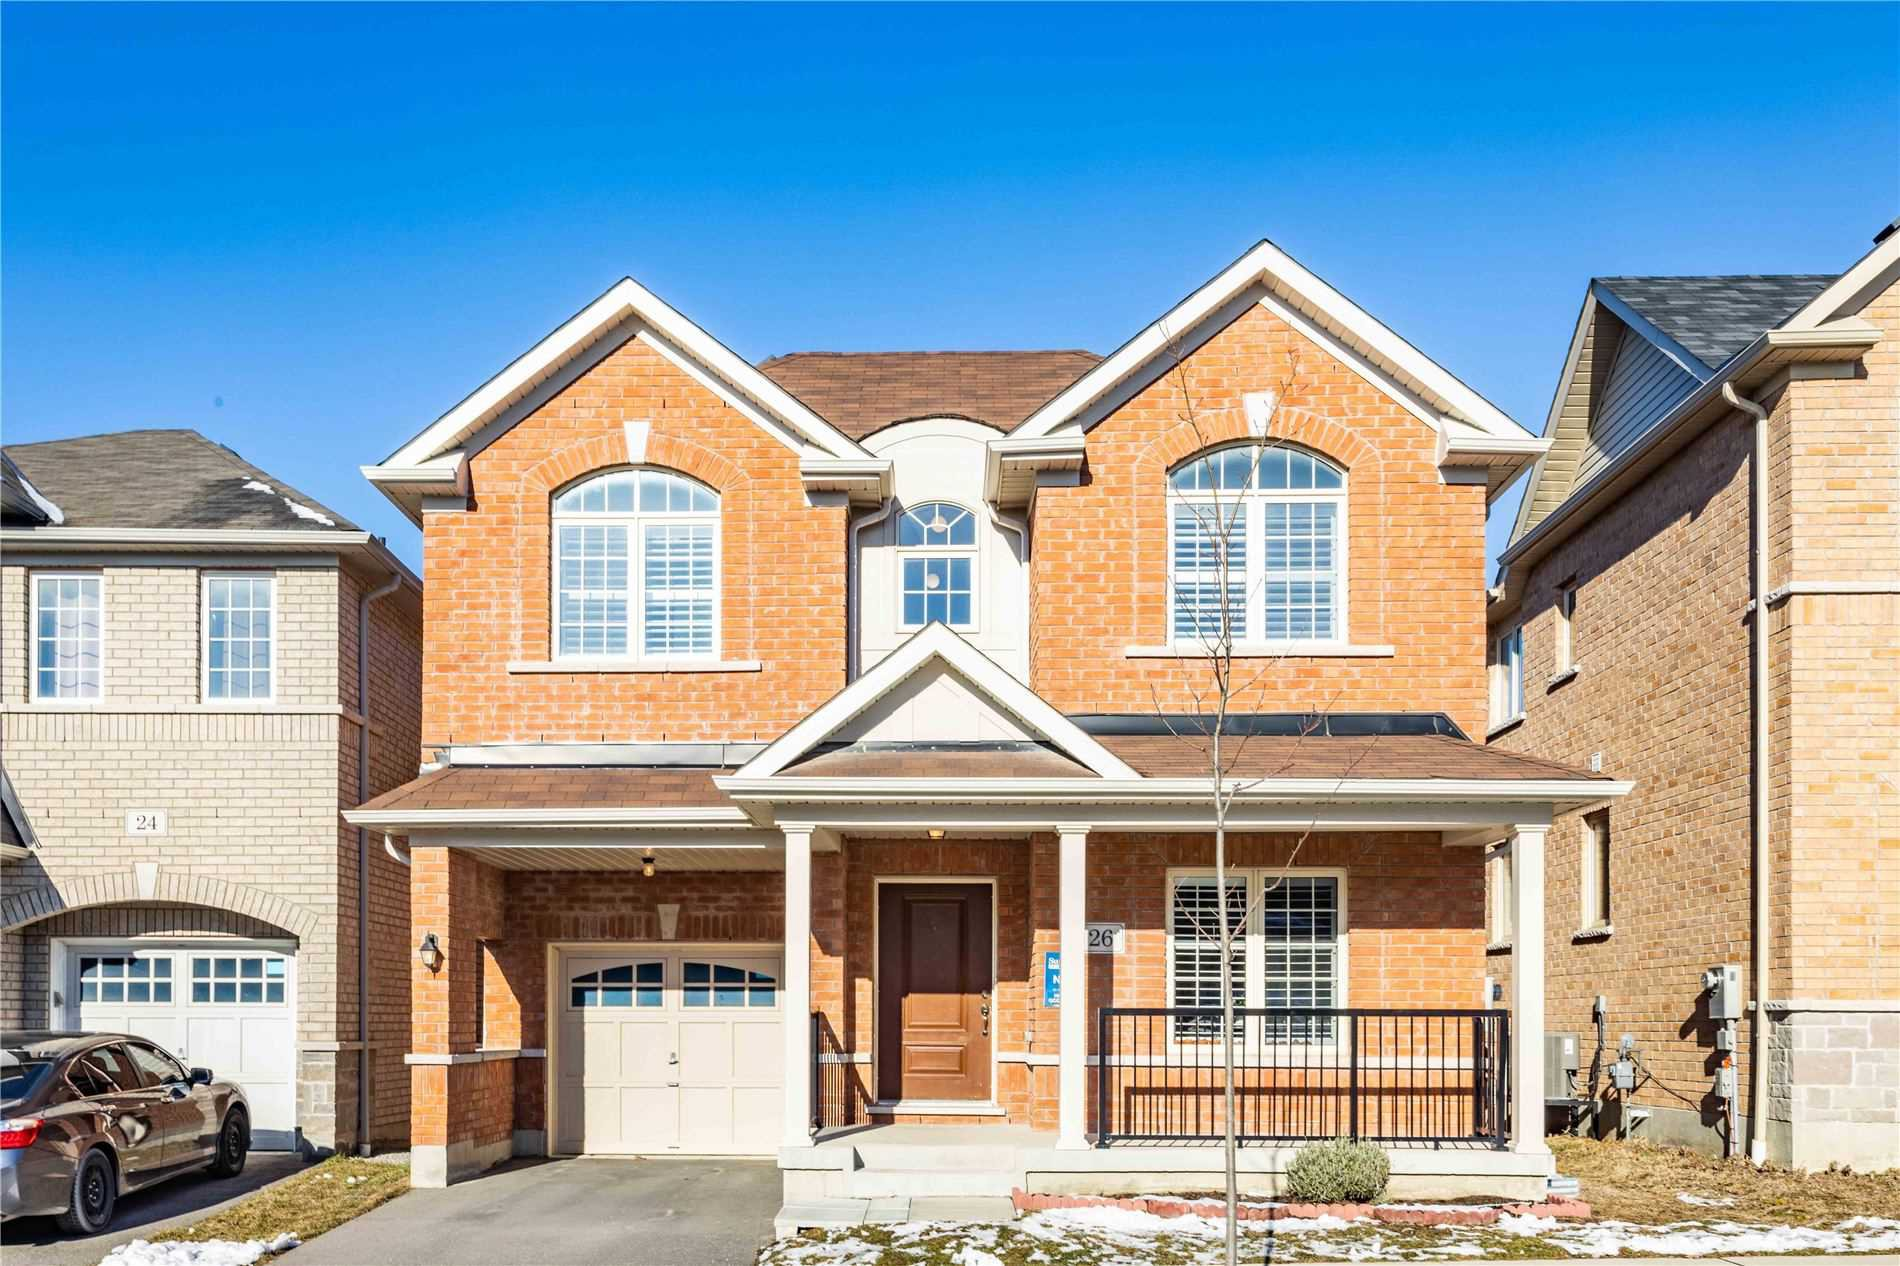 Main Photo: 26 Raithby Crescent in Ajax: Central East House (2-Storey) for sale : MLS®# E5079645